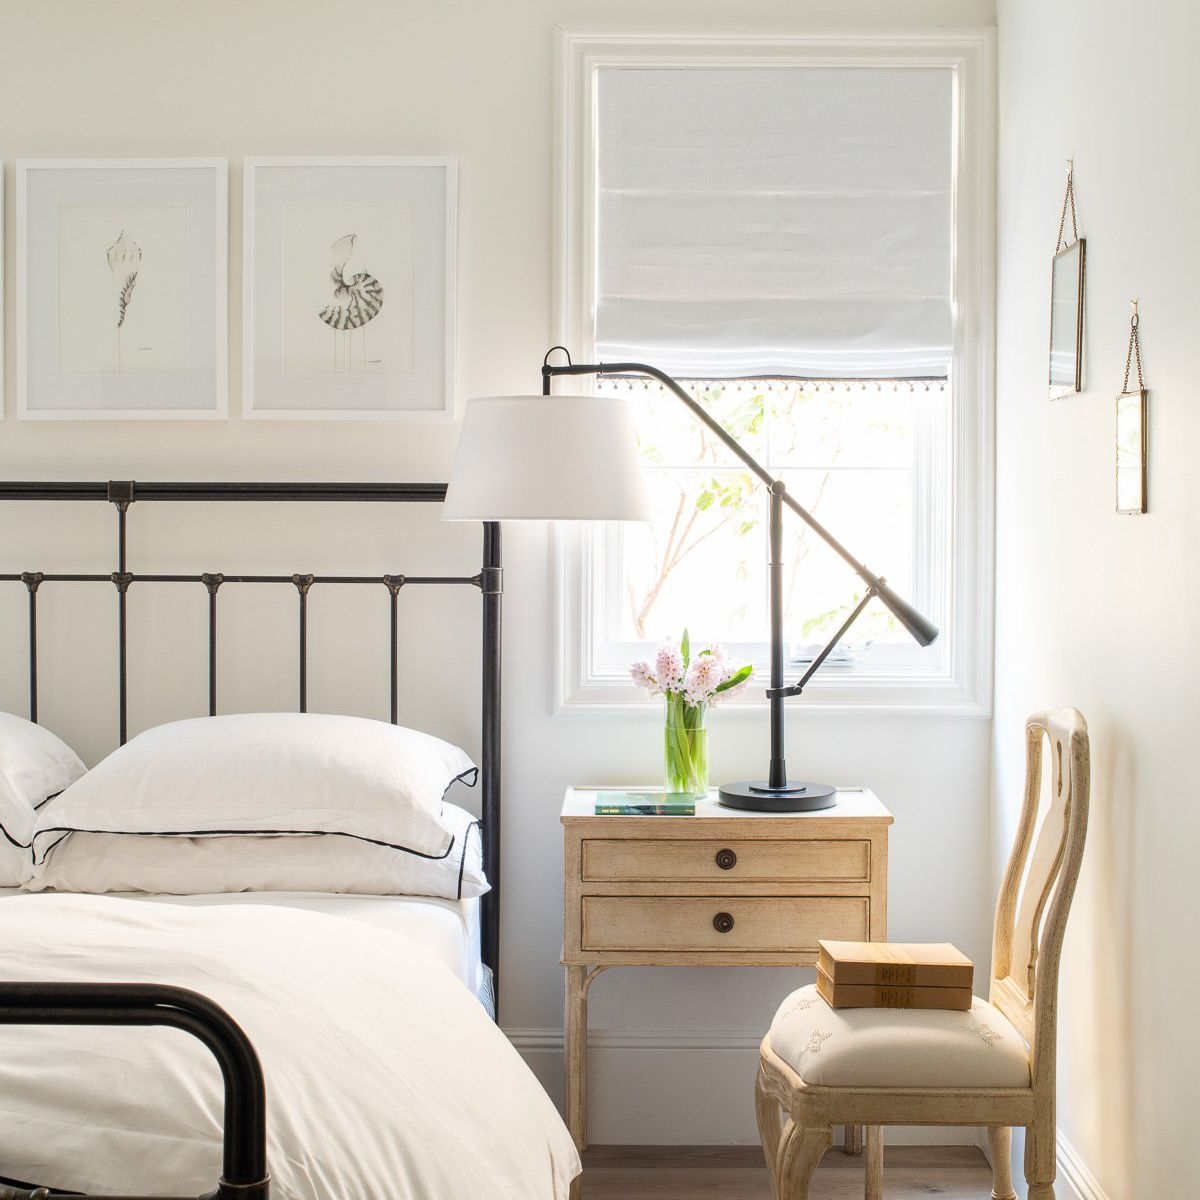 A bedroom with ivory walls